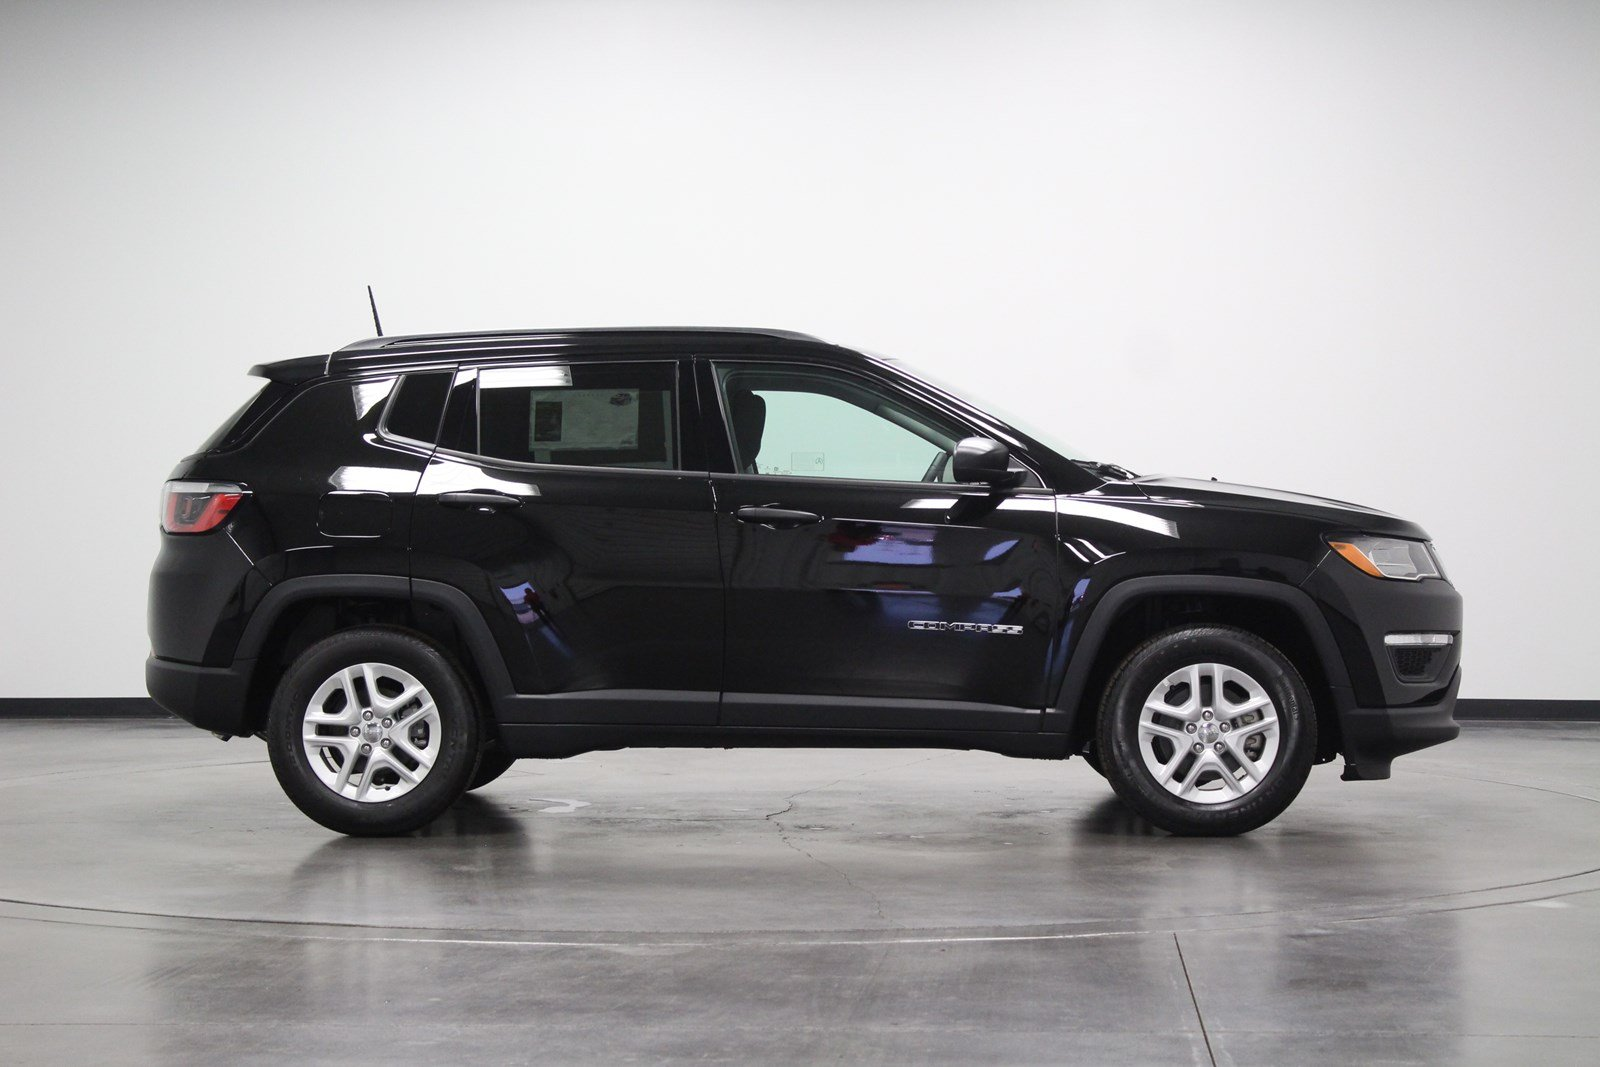 sale htm in black greenville utility compass crystal sport for sc fwd jeep diamond pearlcoat new